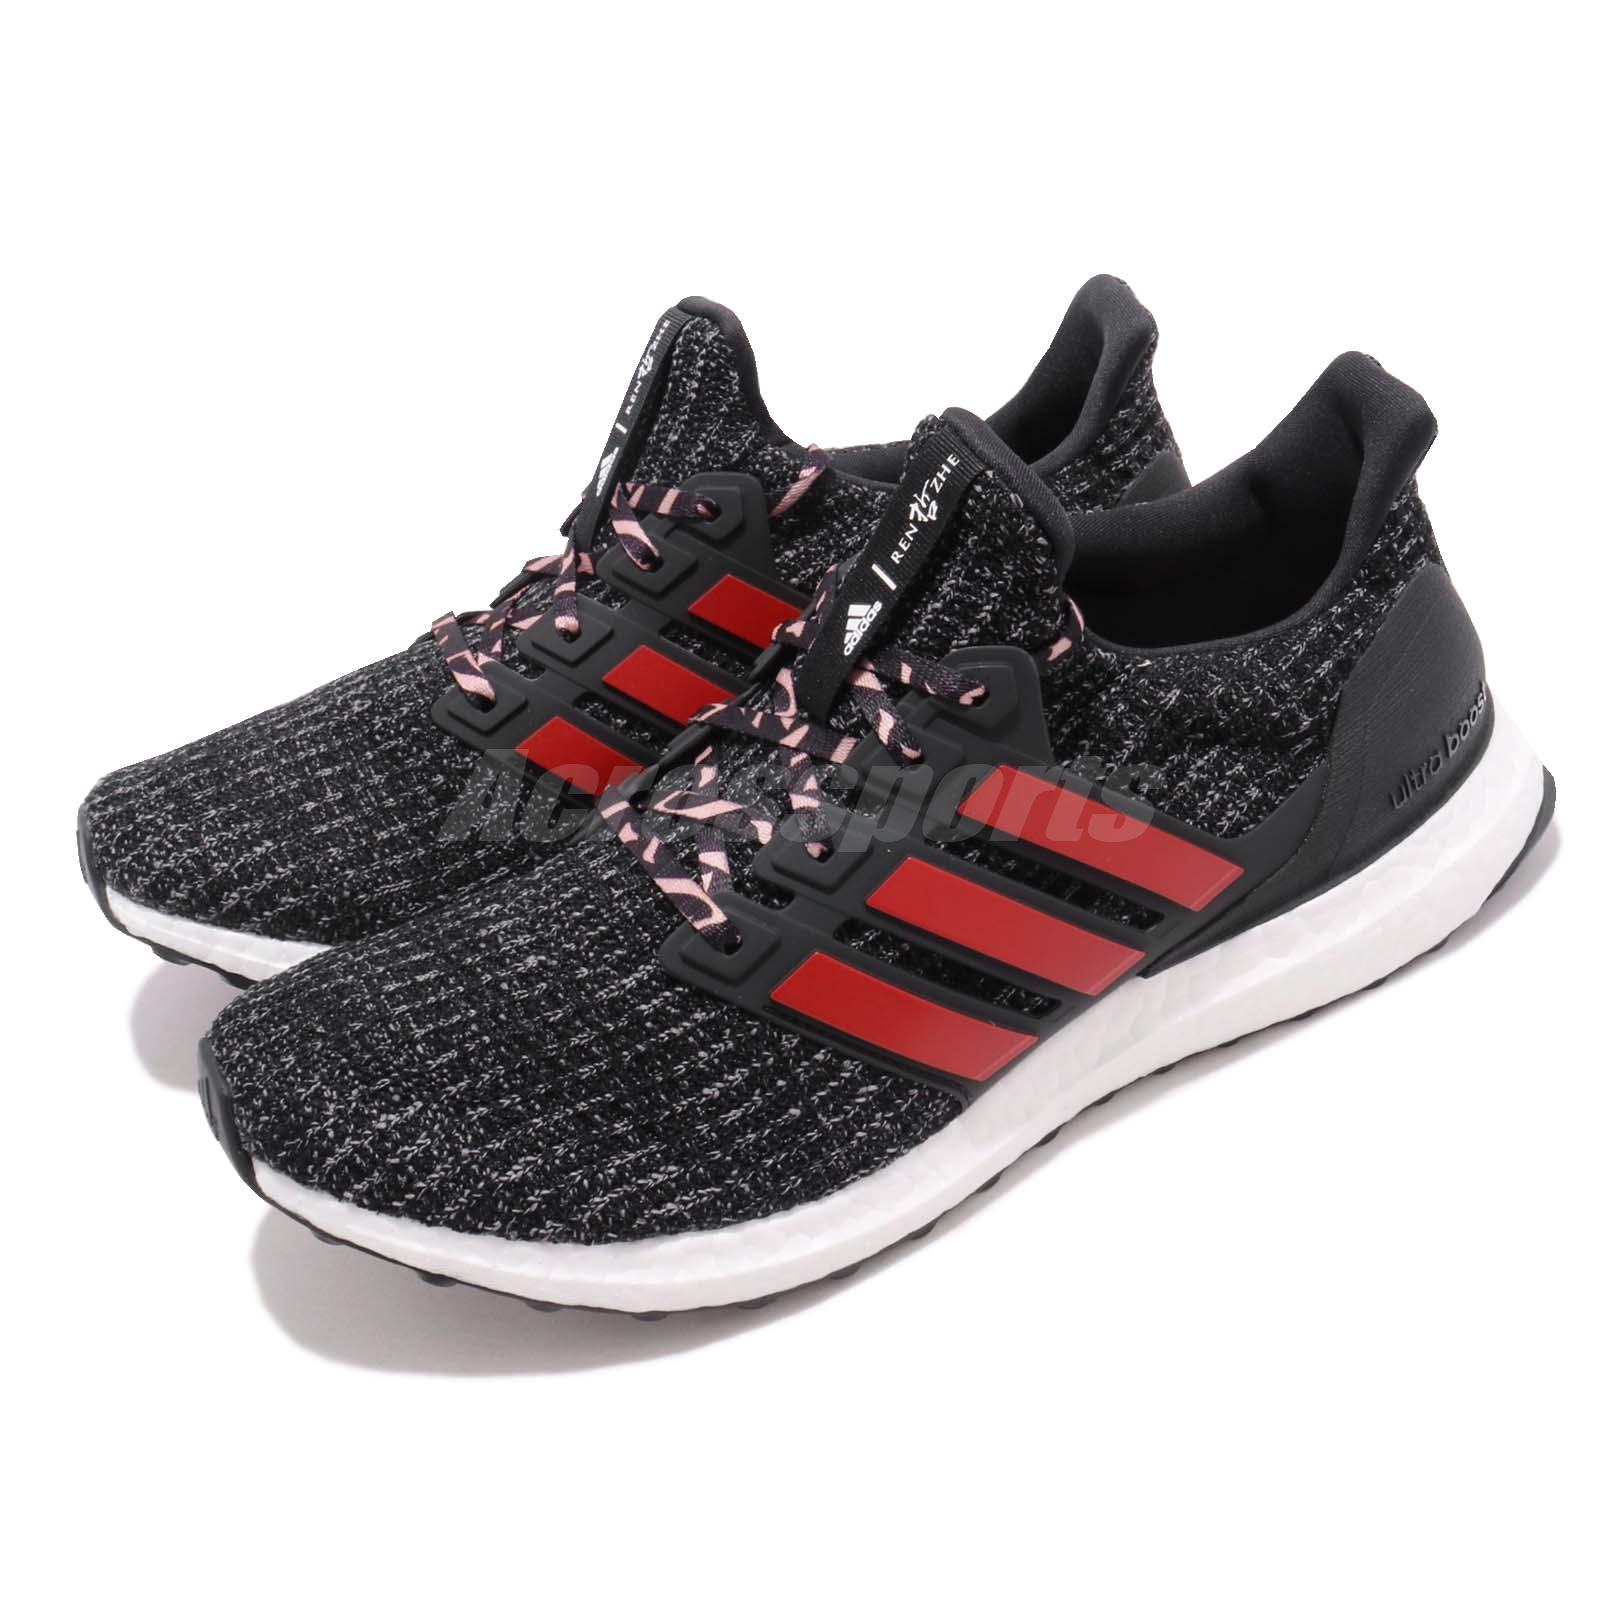 4b20ad0363c Details about adidas UltraBOOST 4.0 Black Red Mens Running Shoes BOOST  F35231